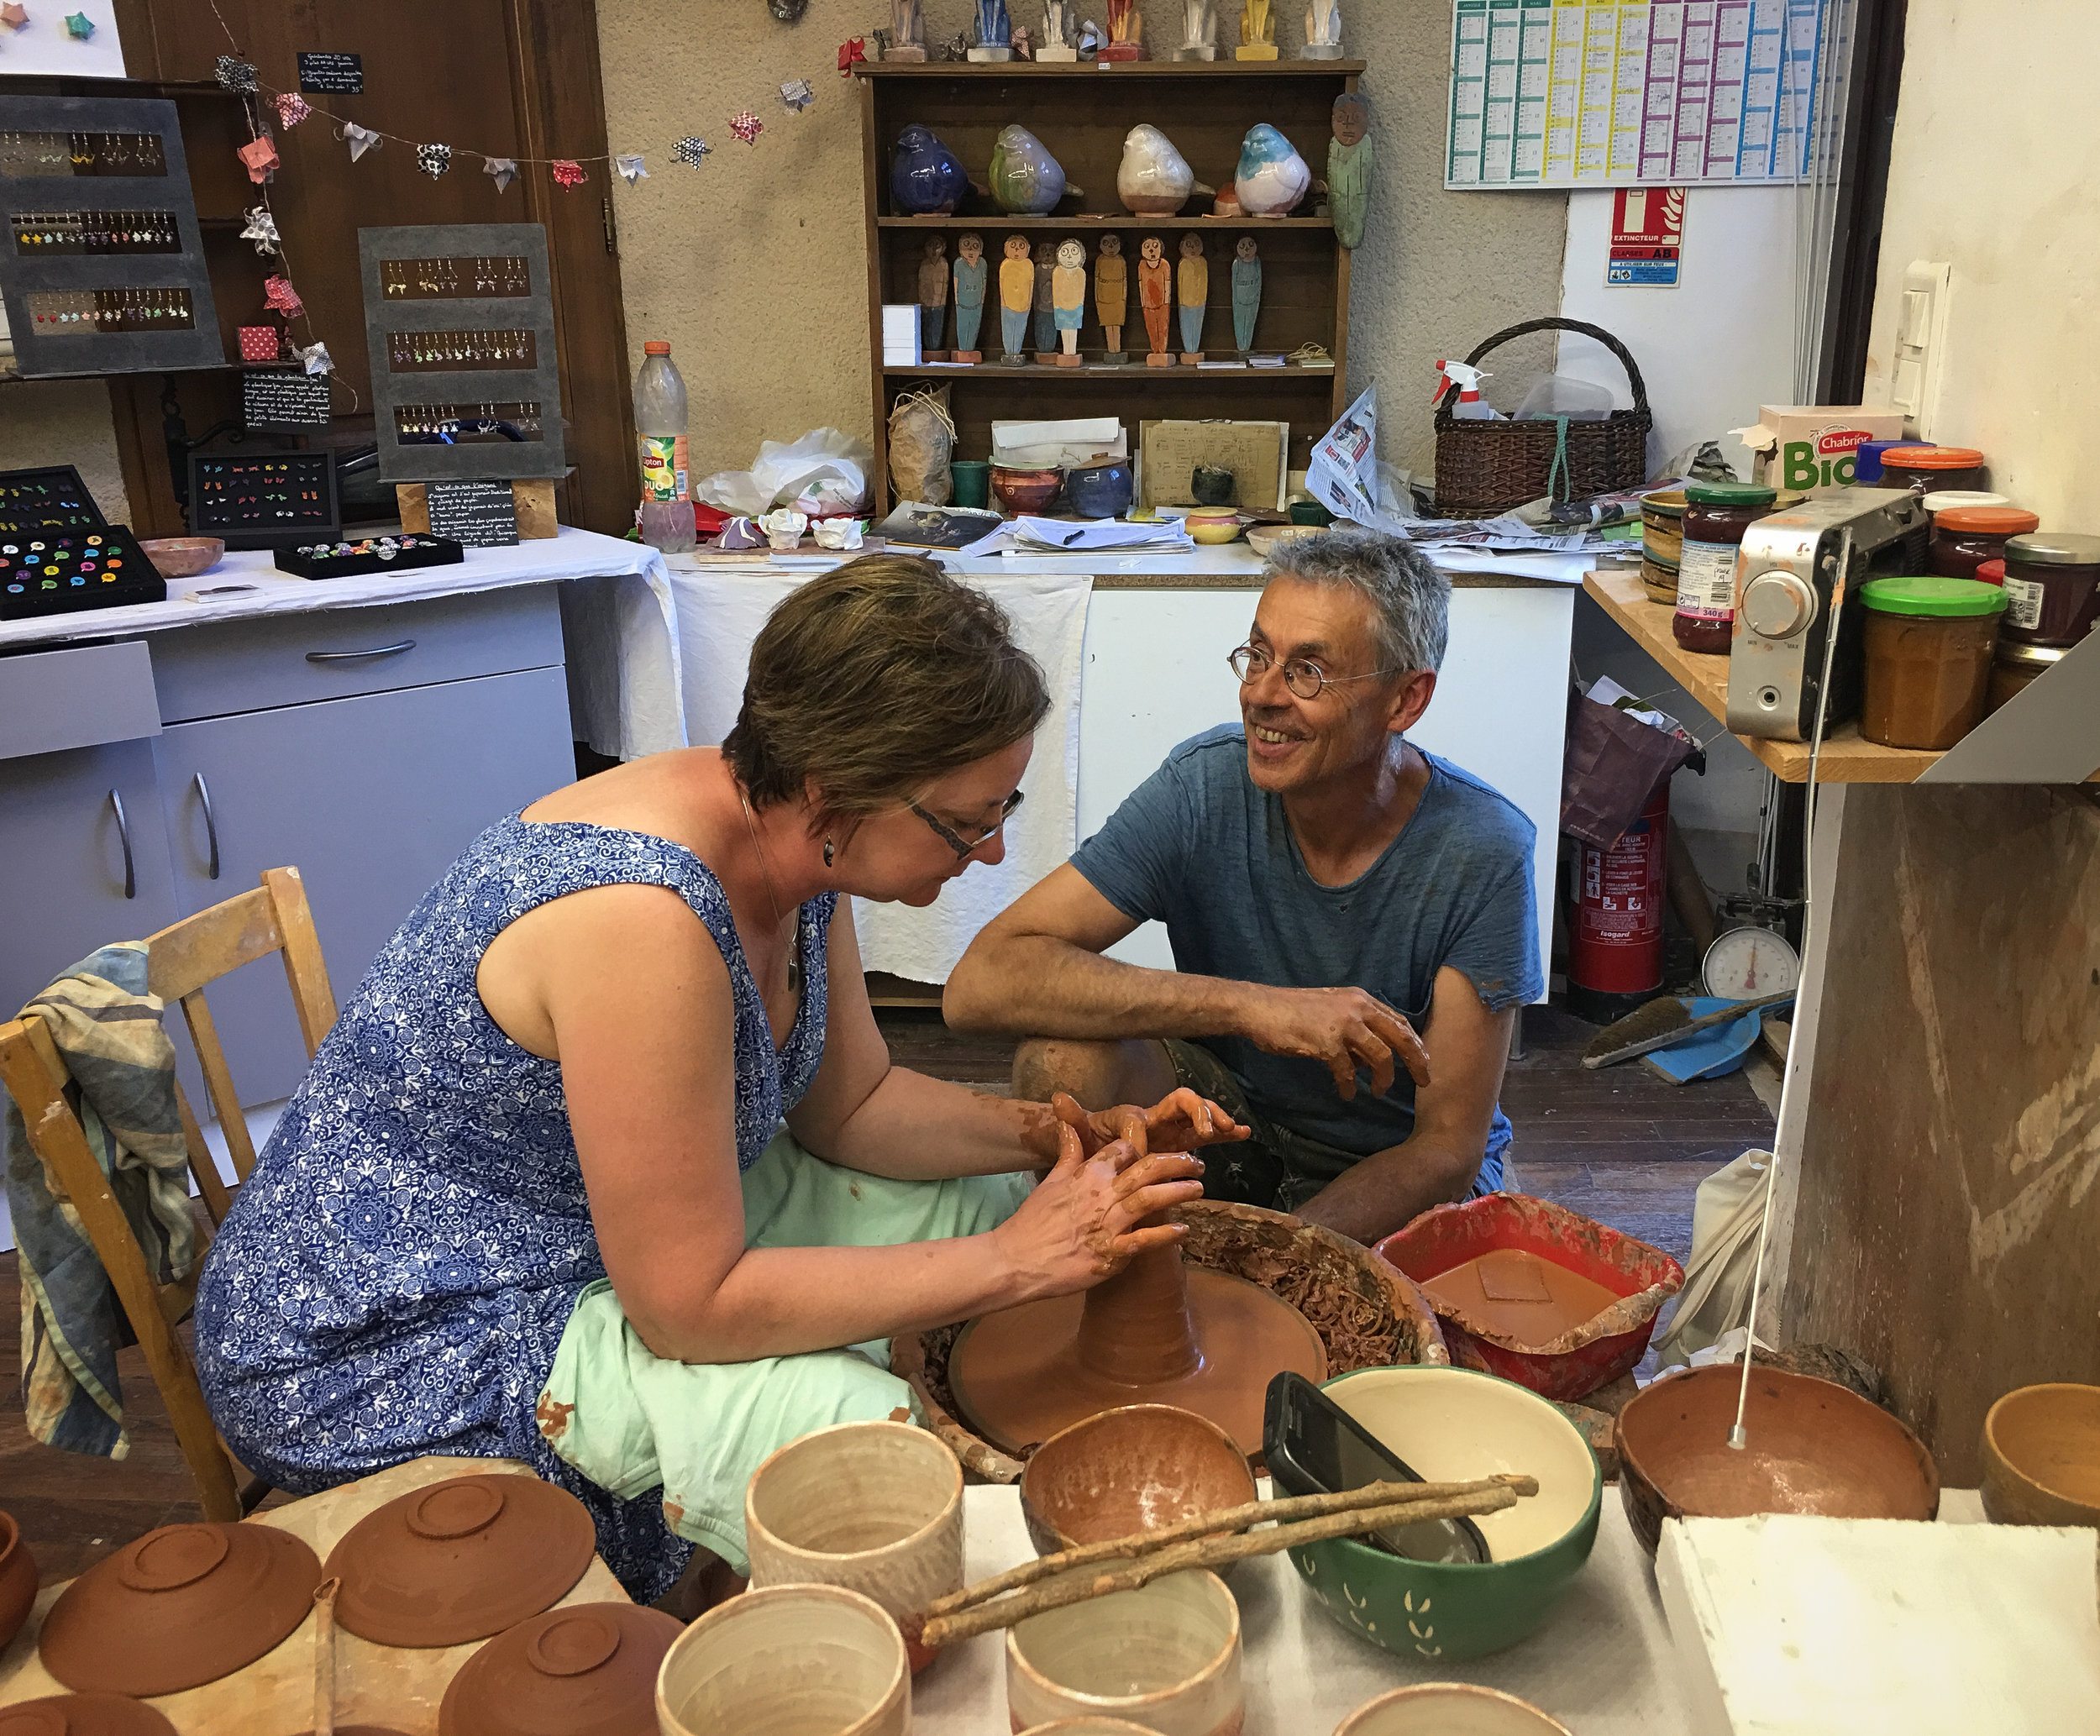 At Belcastel, Kellie is challenging herself at pottery with Thierry's support.